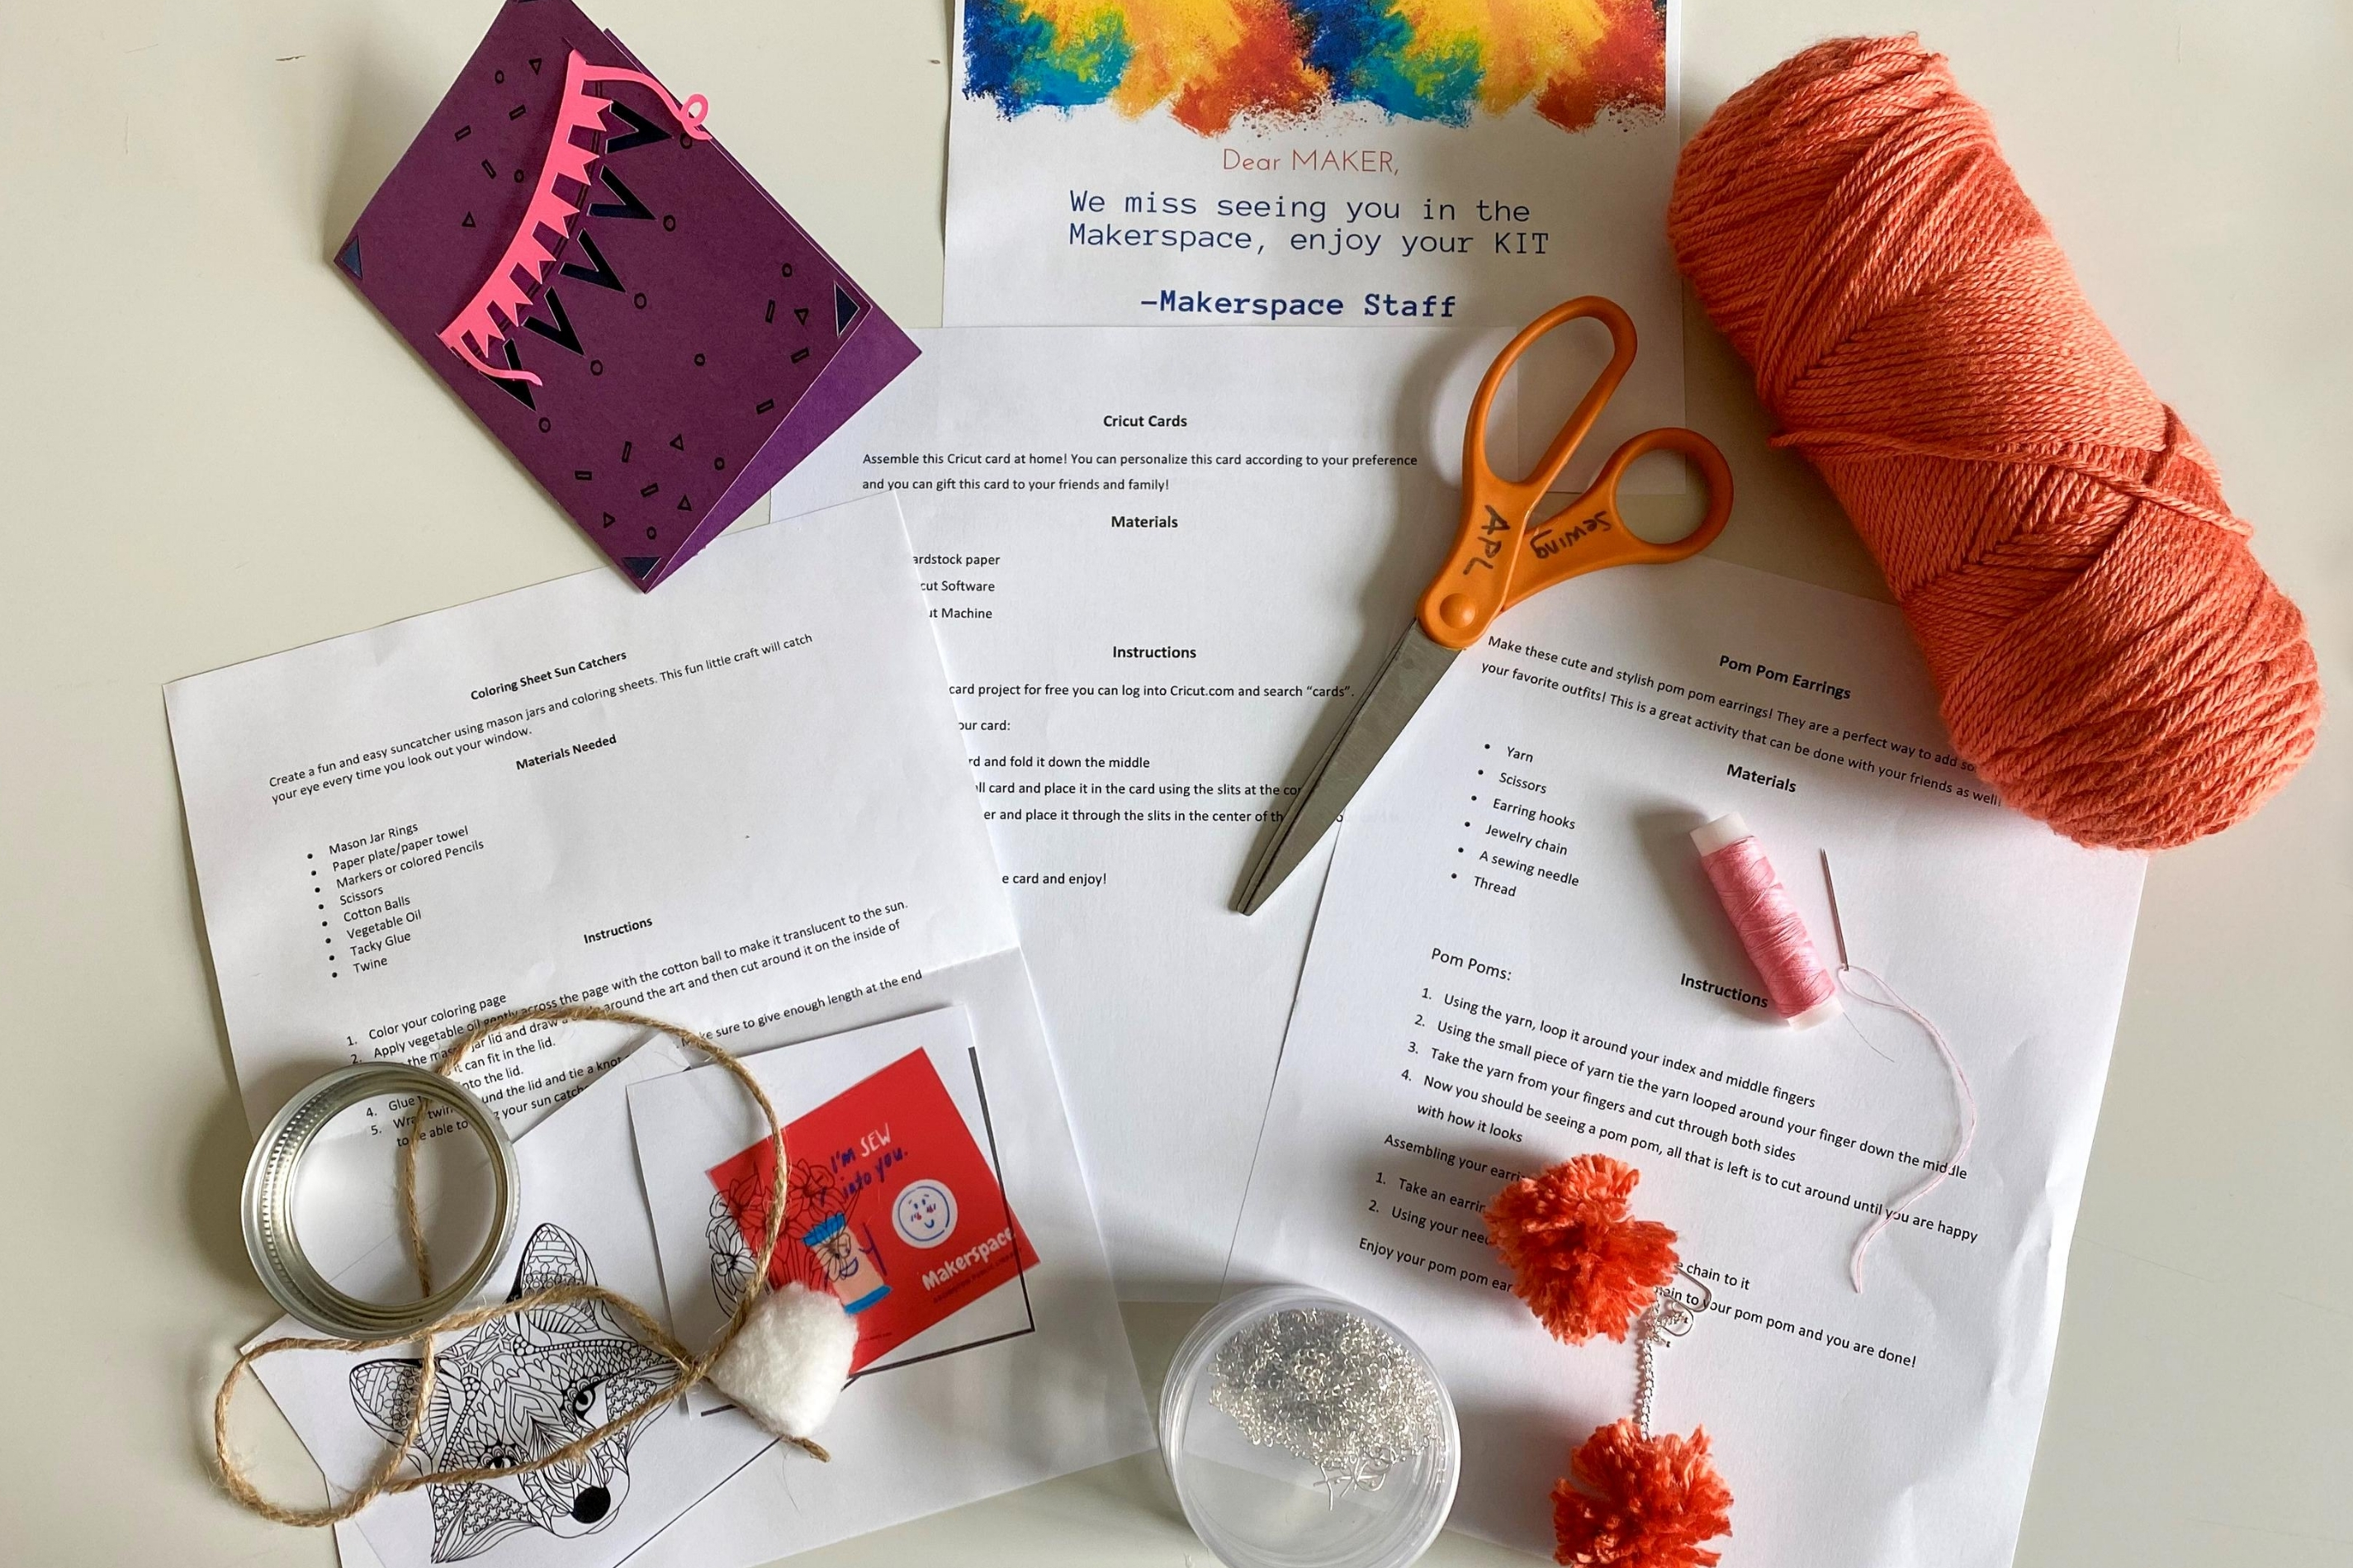 Free Makerspace Activity Kits throughout August 2020